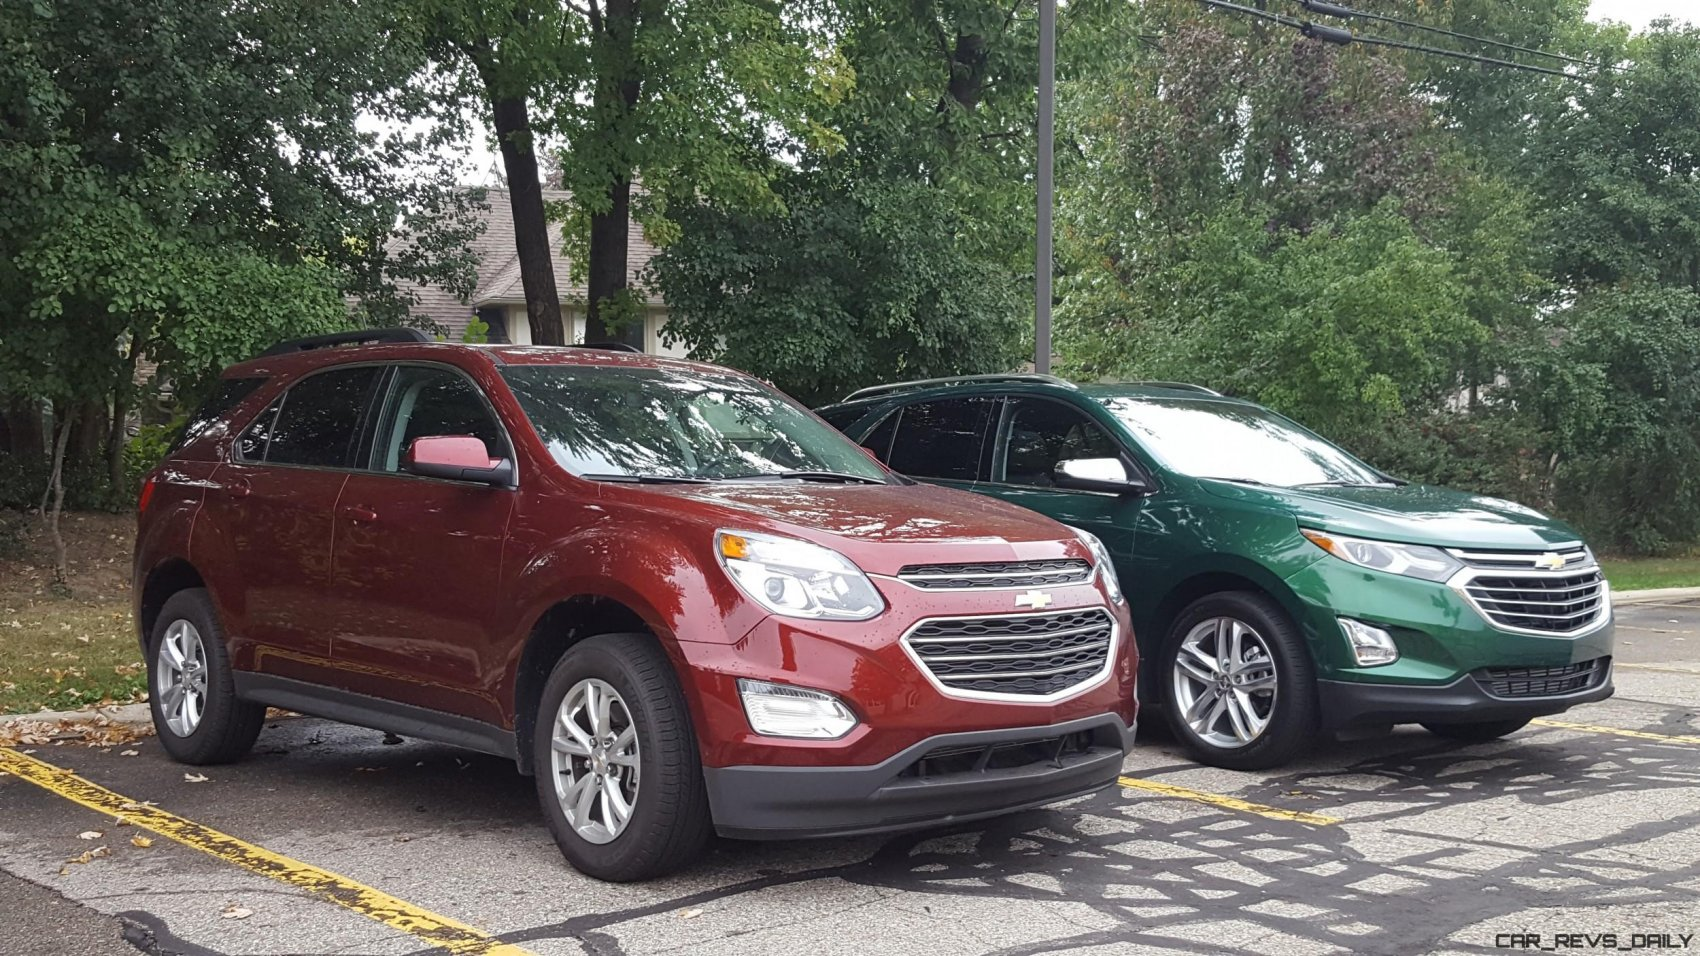 old vs new 2018 chevrolet equinox vs 2017 chevrolet equinox by carl malek. Black Bedroom Furniture Sets. Home Design Ideas